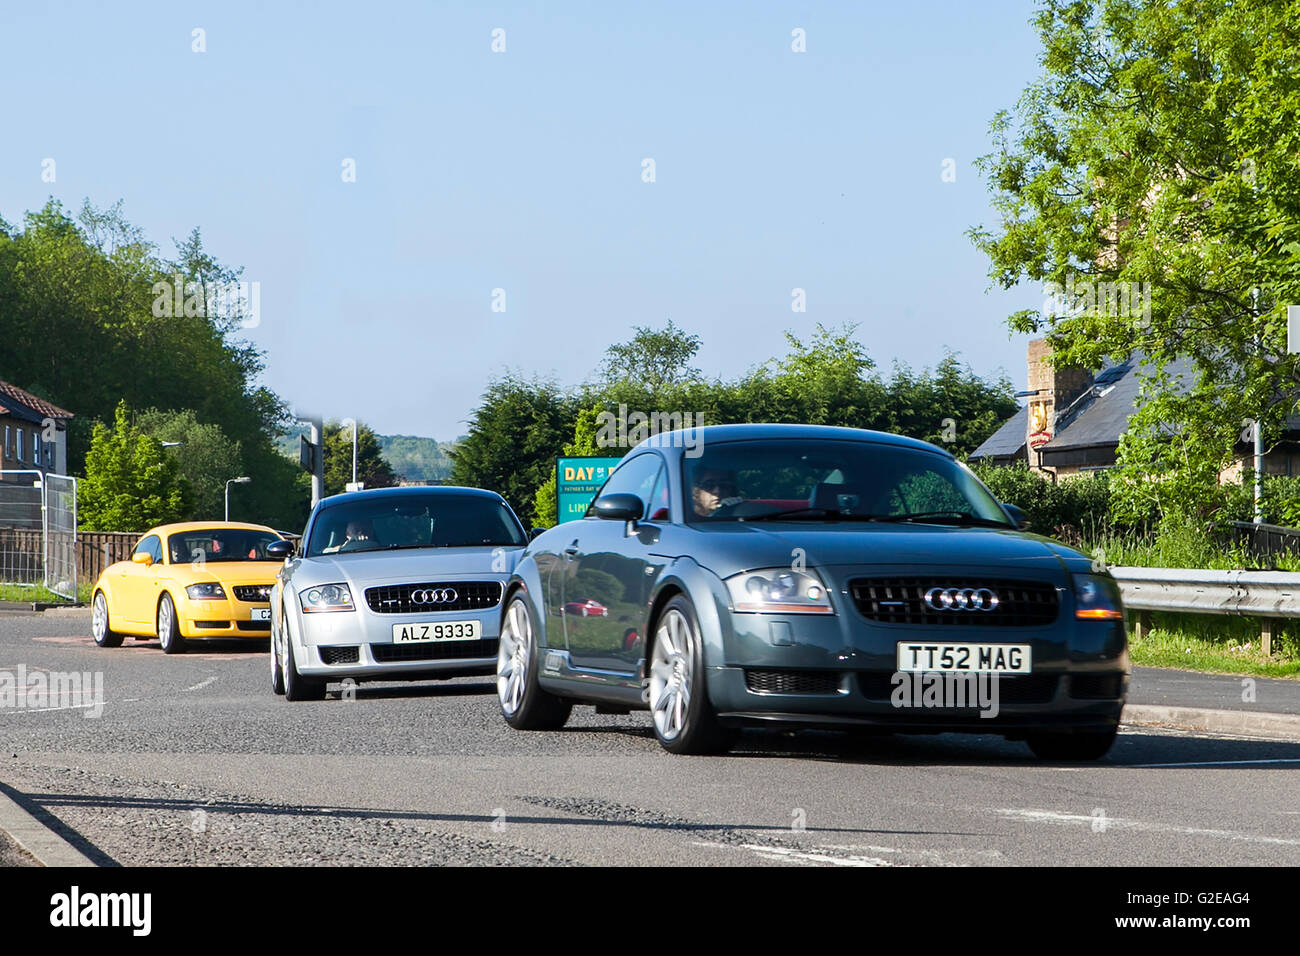 V8s Stock Photos Amp V8s Stock Images Alamy